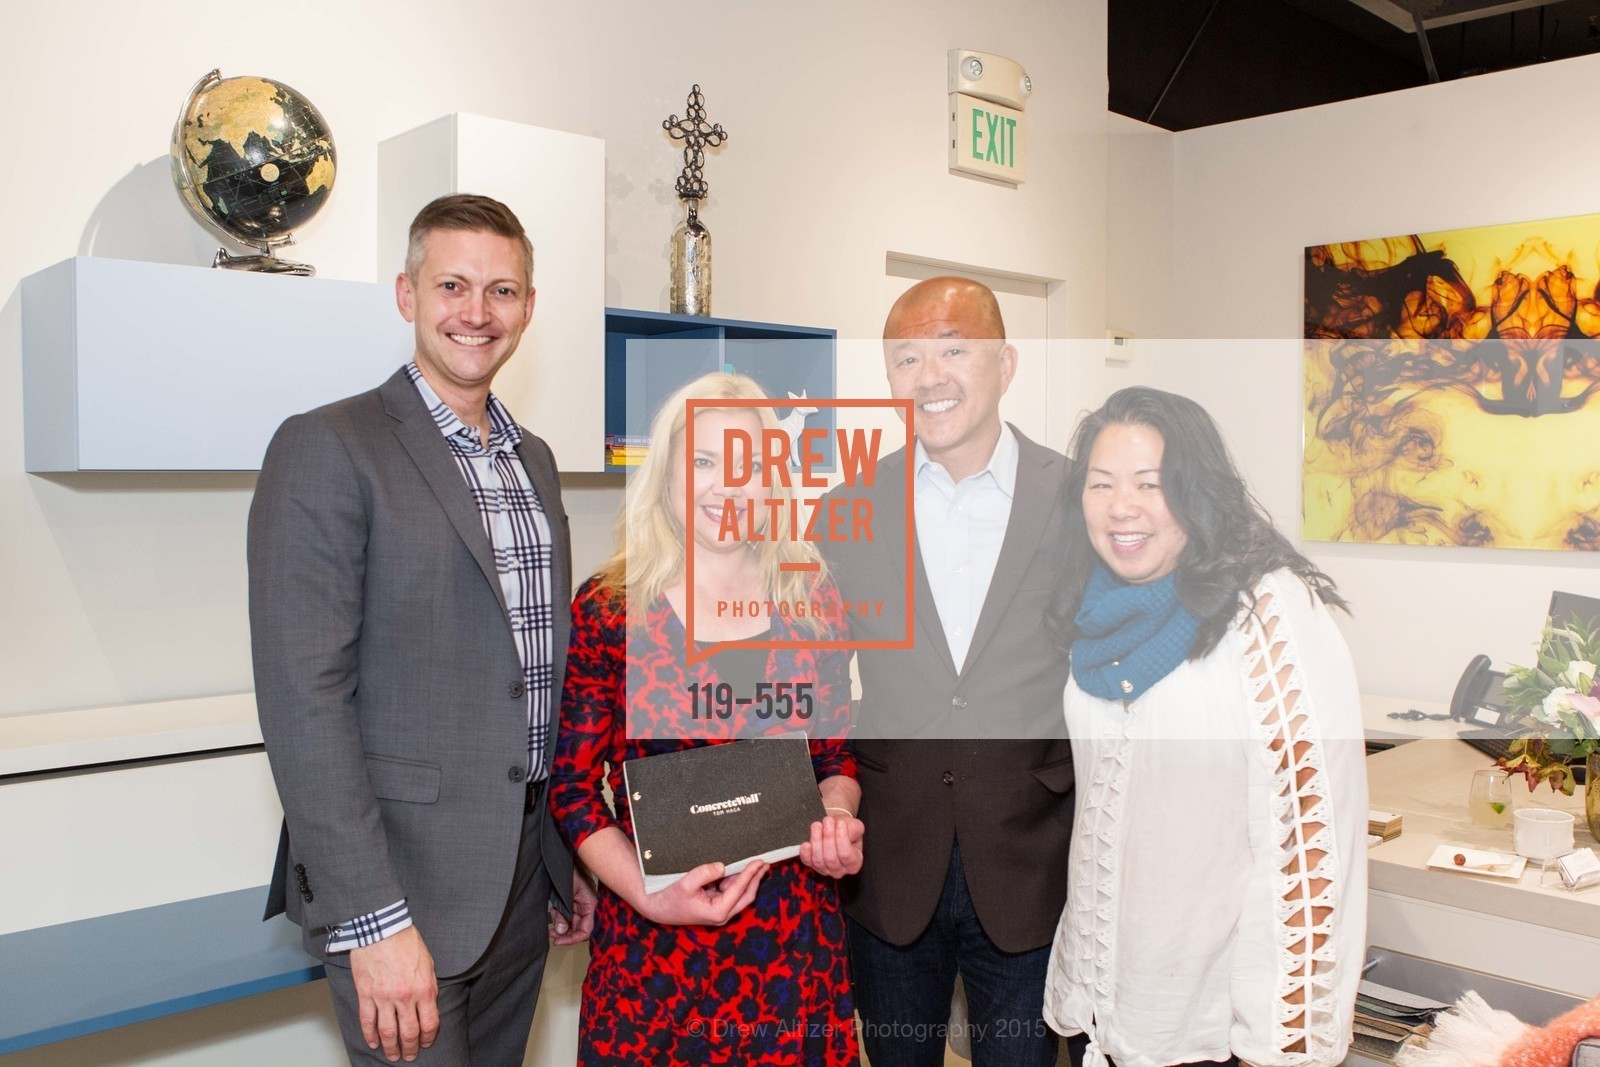 Michael Minson, Eva Eastman, Norm Fung, Pat Lee, SFC&G Real Estate Survey Reveal, Resource Furniture, November 19th, 2015,Drew Altizer, Drew Altizer Photography, full-service agency, private events, San Francisco photographer, photographer california